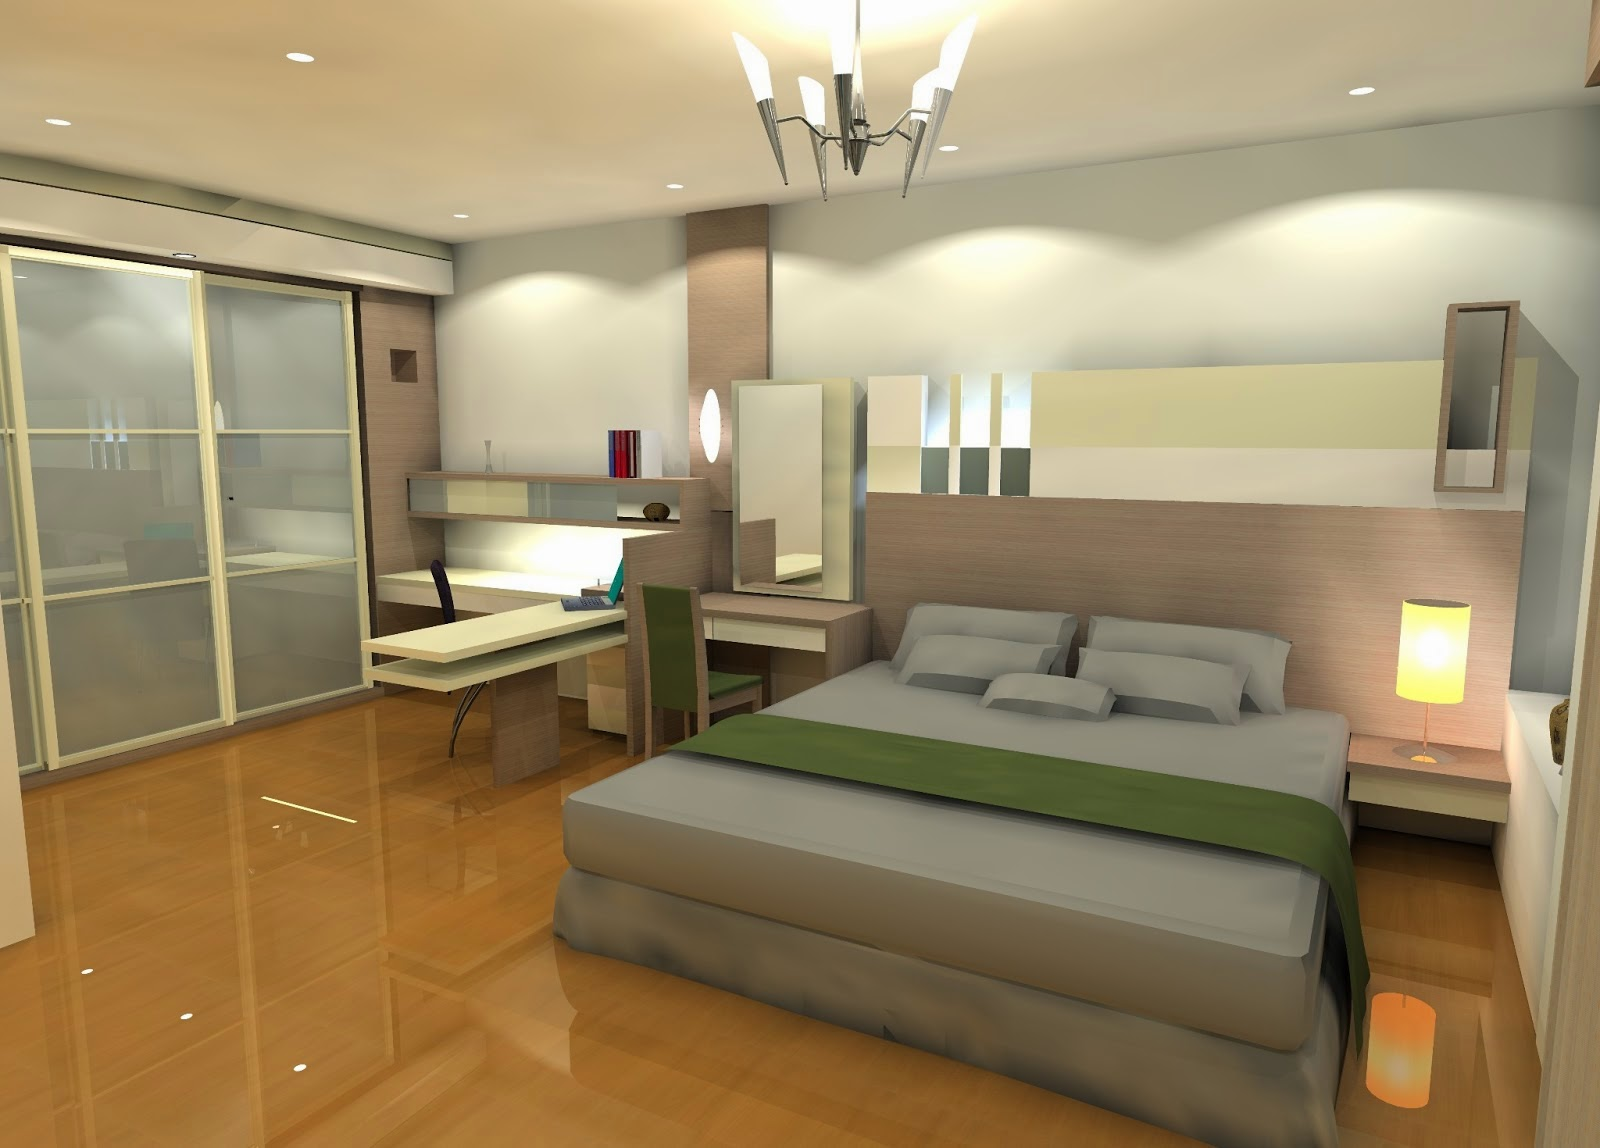 Modern bedroom interior design 2015 exclusive home for Sleeping room interior design